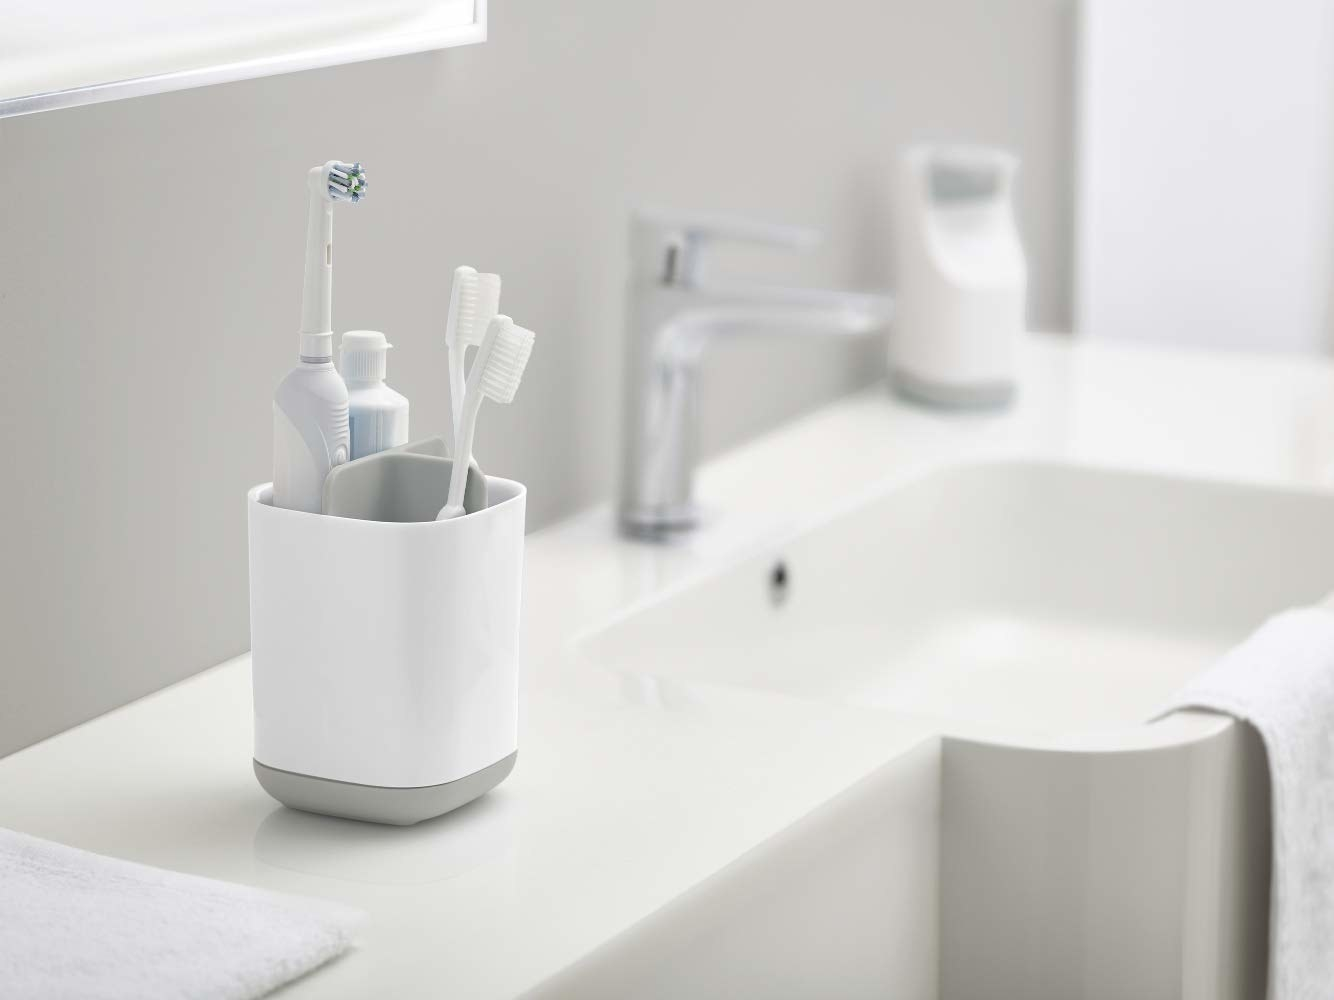 The toothbrush caddy with toothbrushes in it